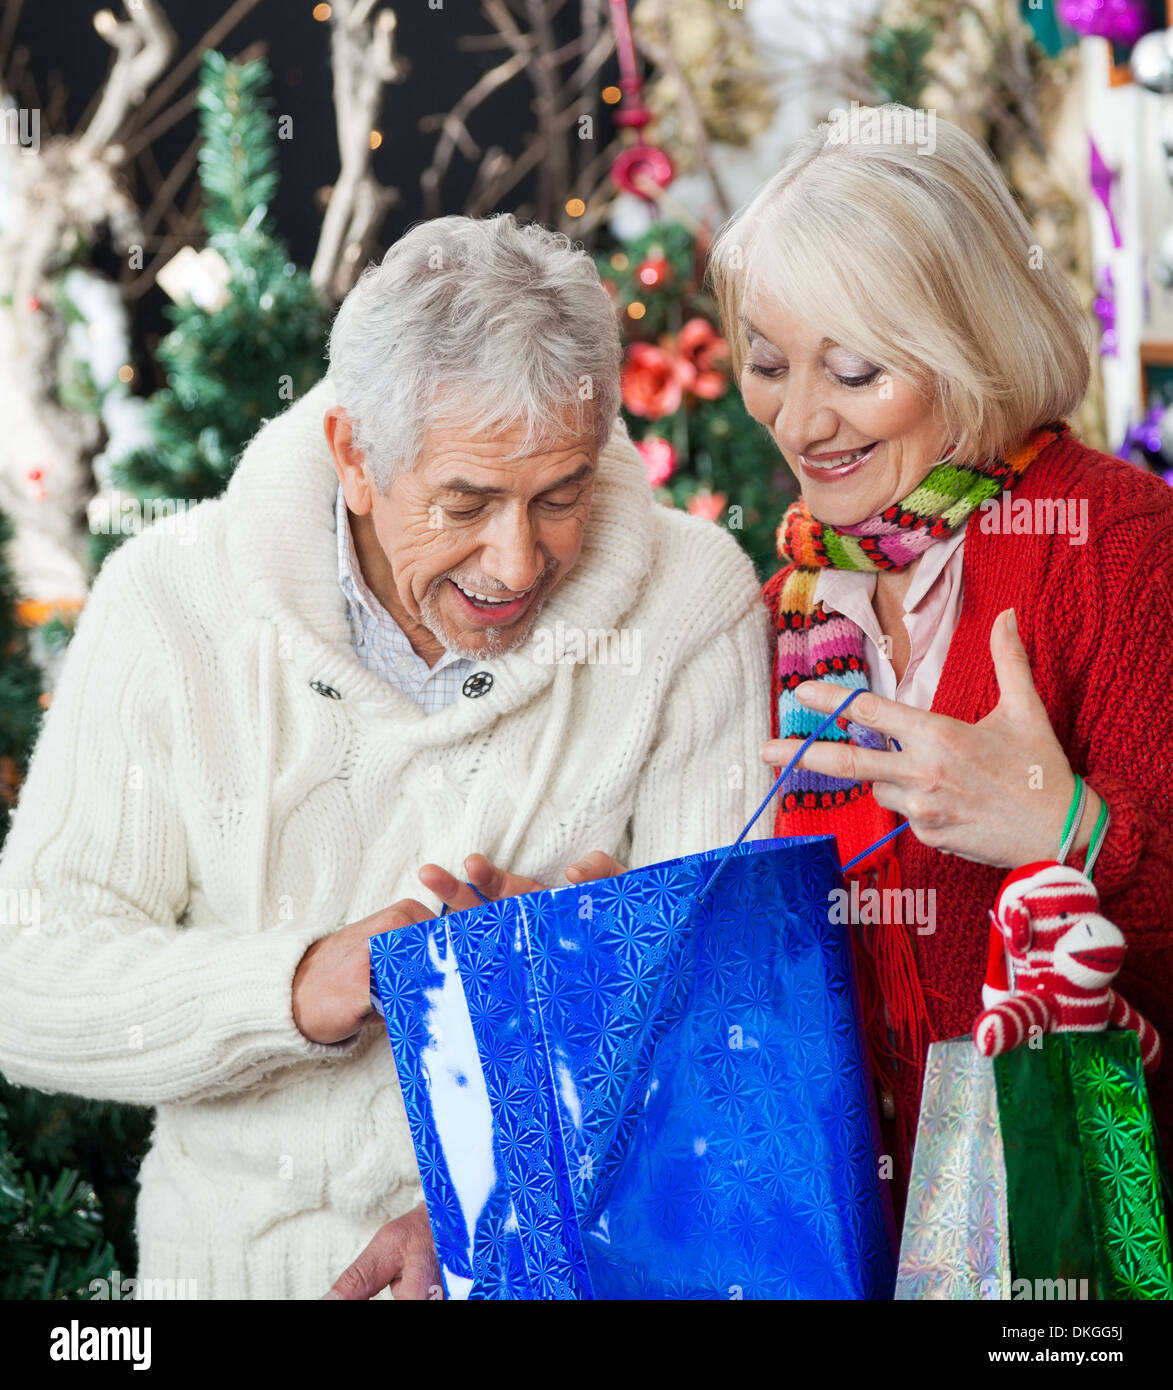 Surprised Couple Looking Into Shopping Bag - Stock Image